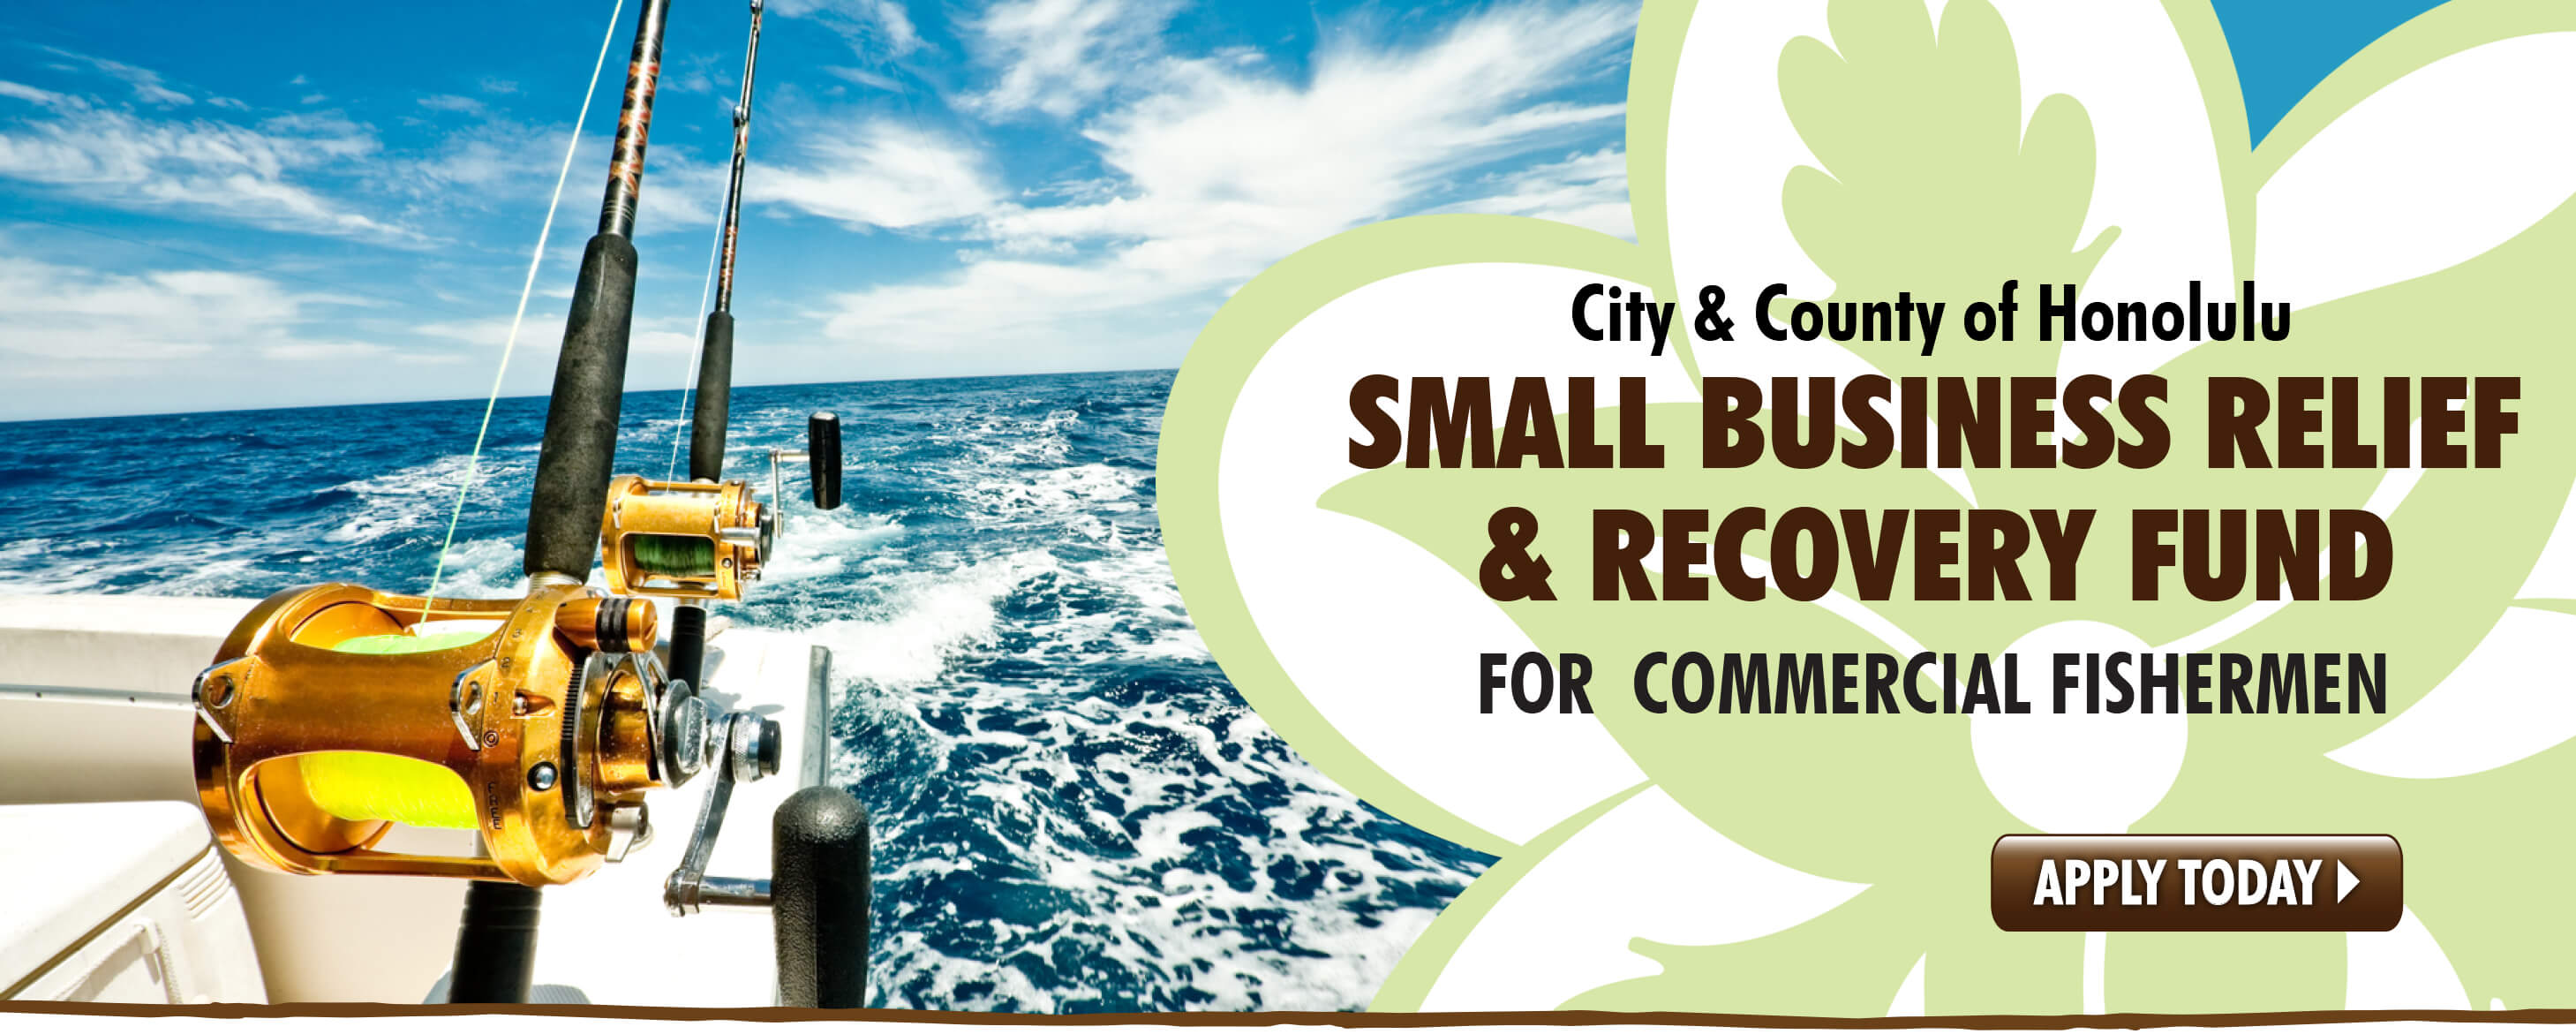 Small Business Relief & Recovery Fund for Commercial Fishermen.  Apply today!